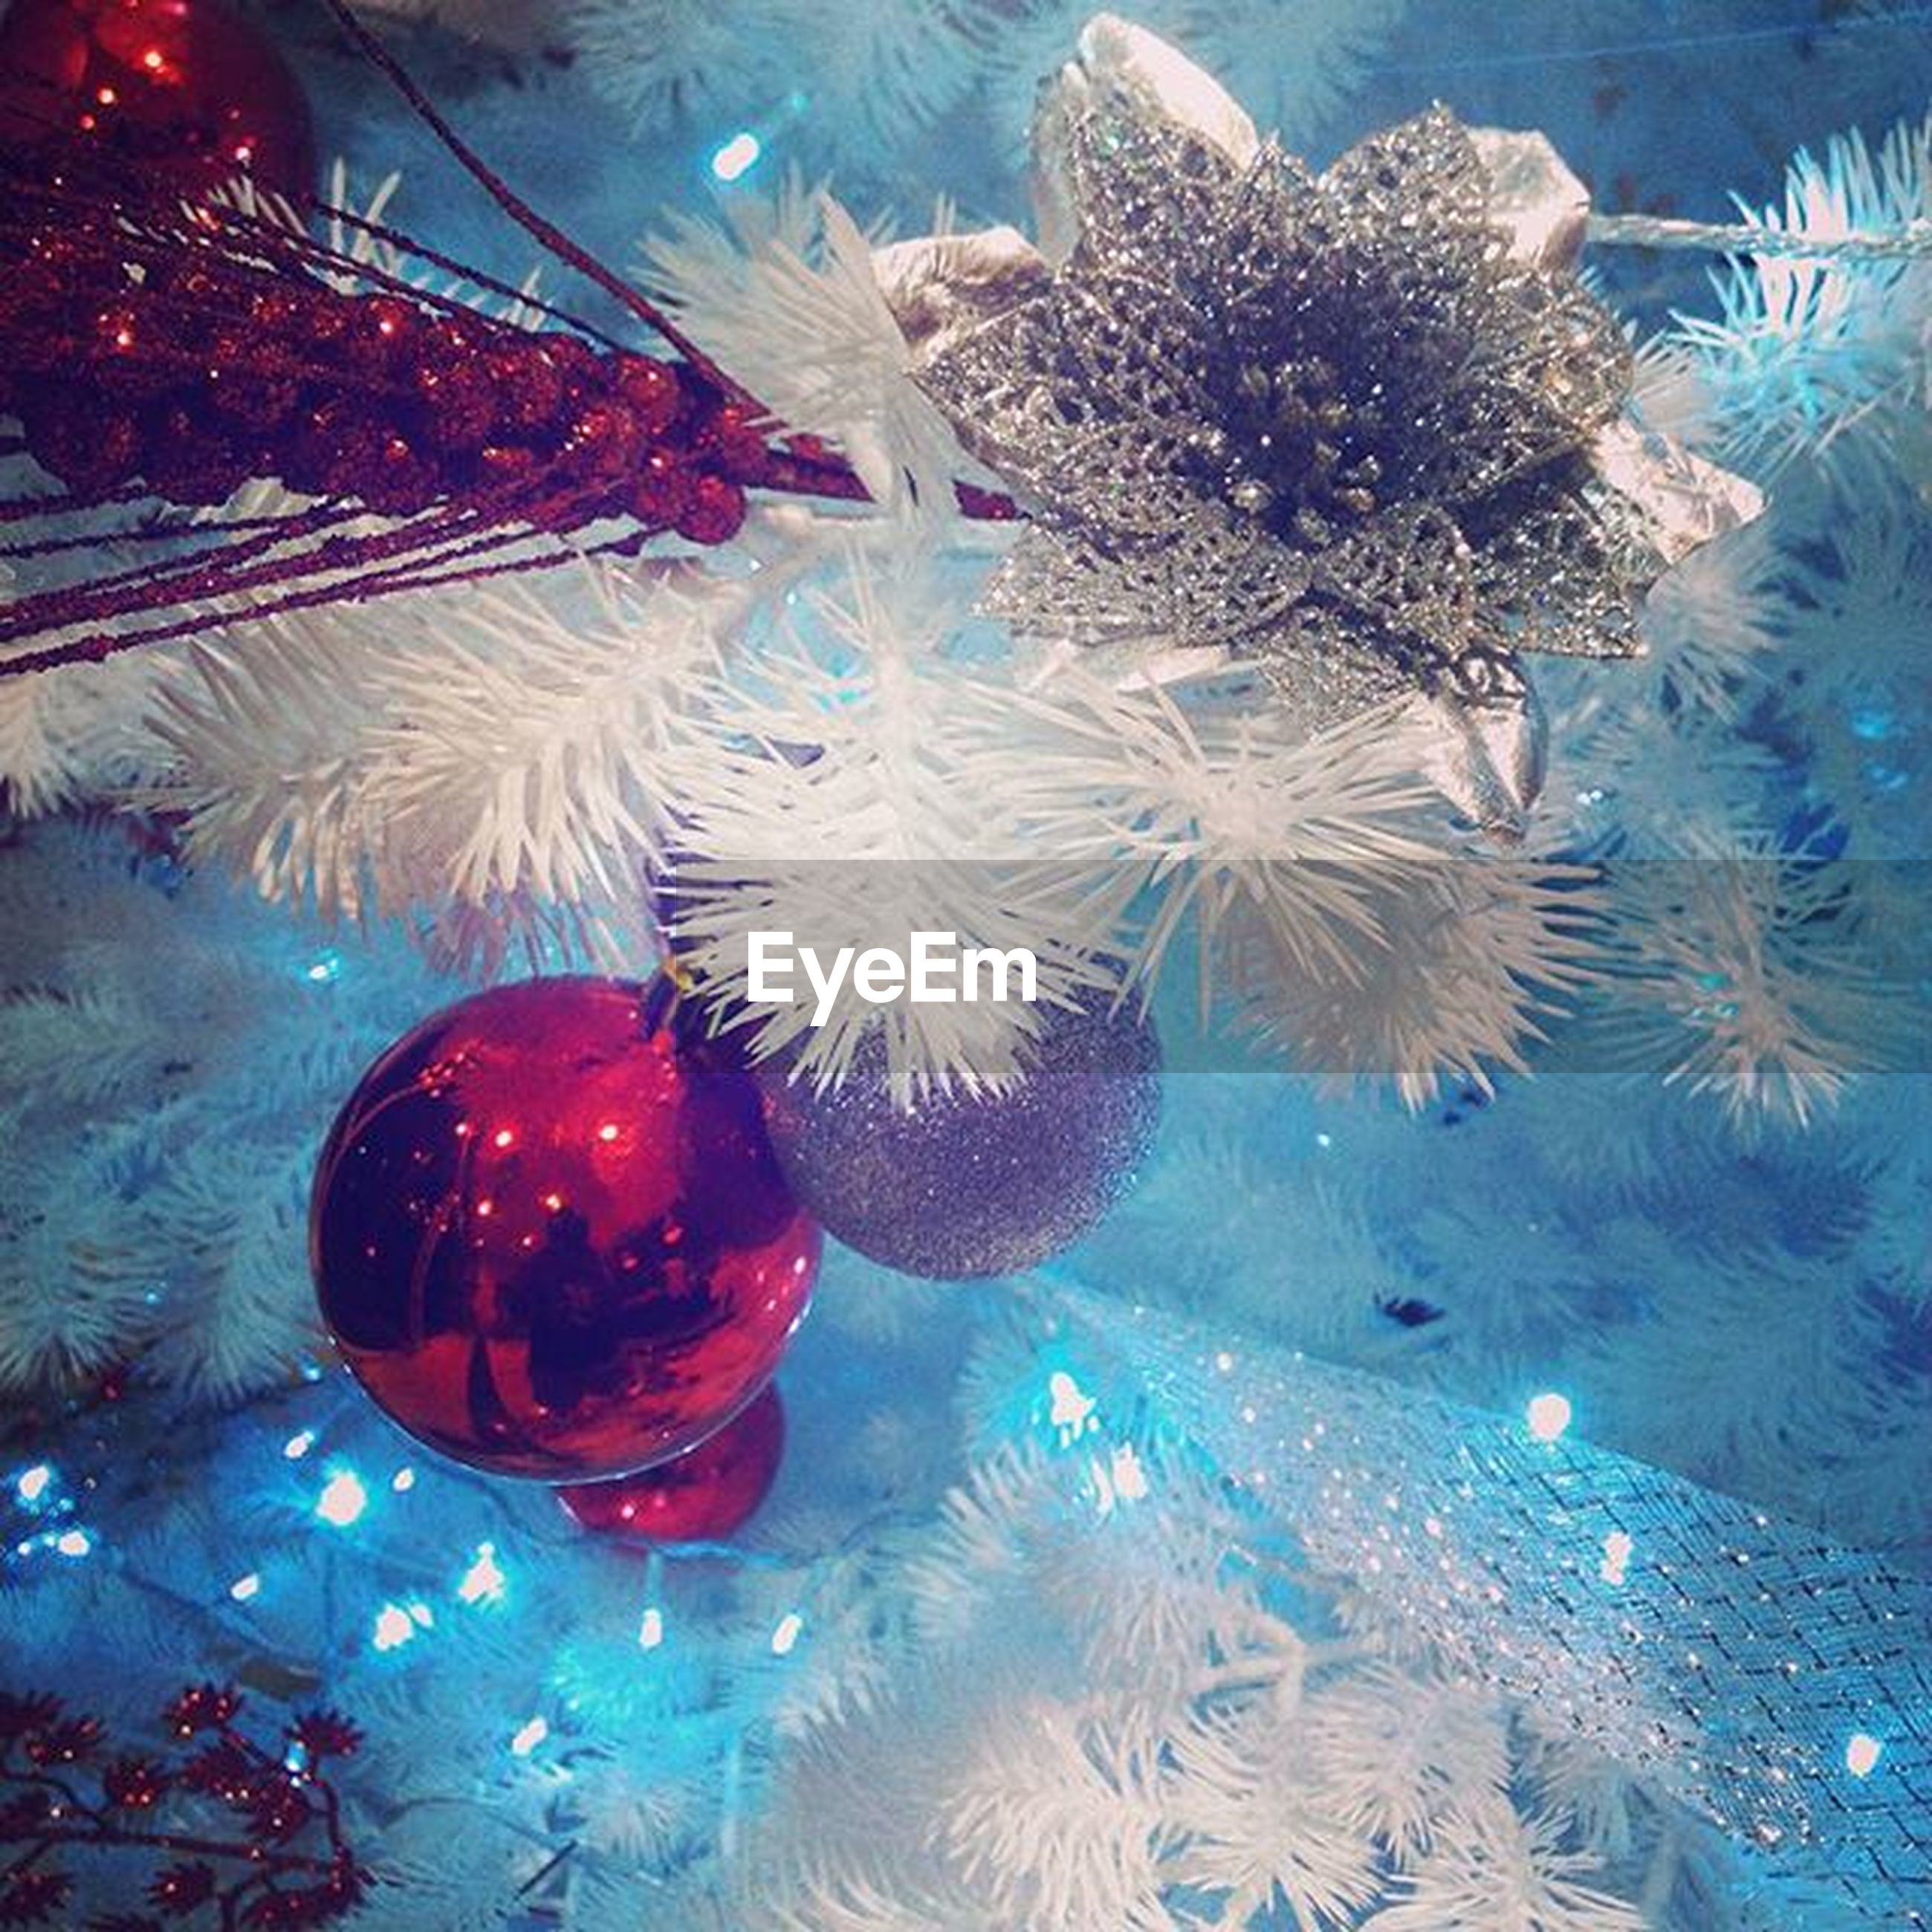 indoors, transparent, glass - material, water, reflection, celebration, christmas, cold temperature, no people, blue, table, swimming pool, decoration, high angle view, close-up, still life, food and drink, christmas decoration, glass, illuminated